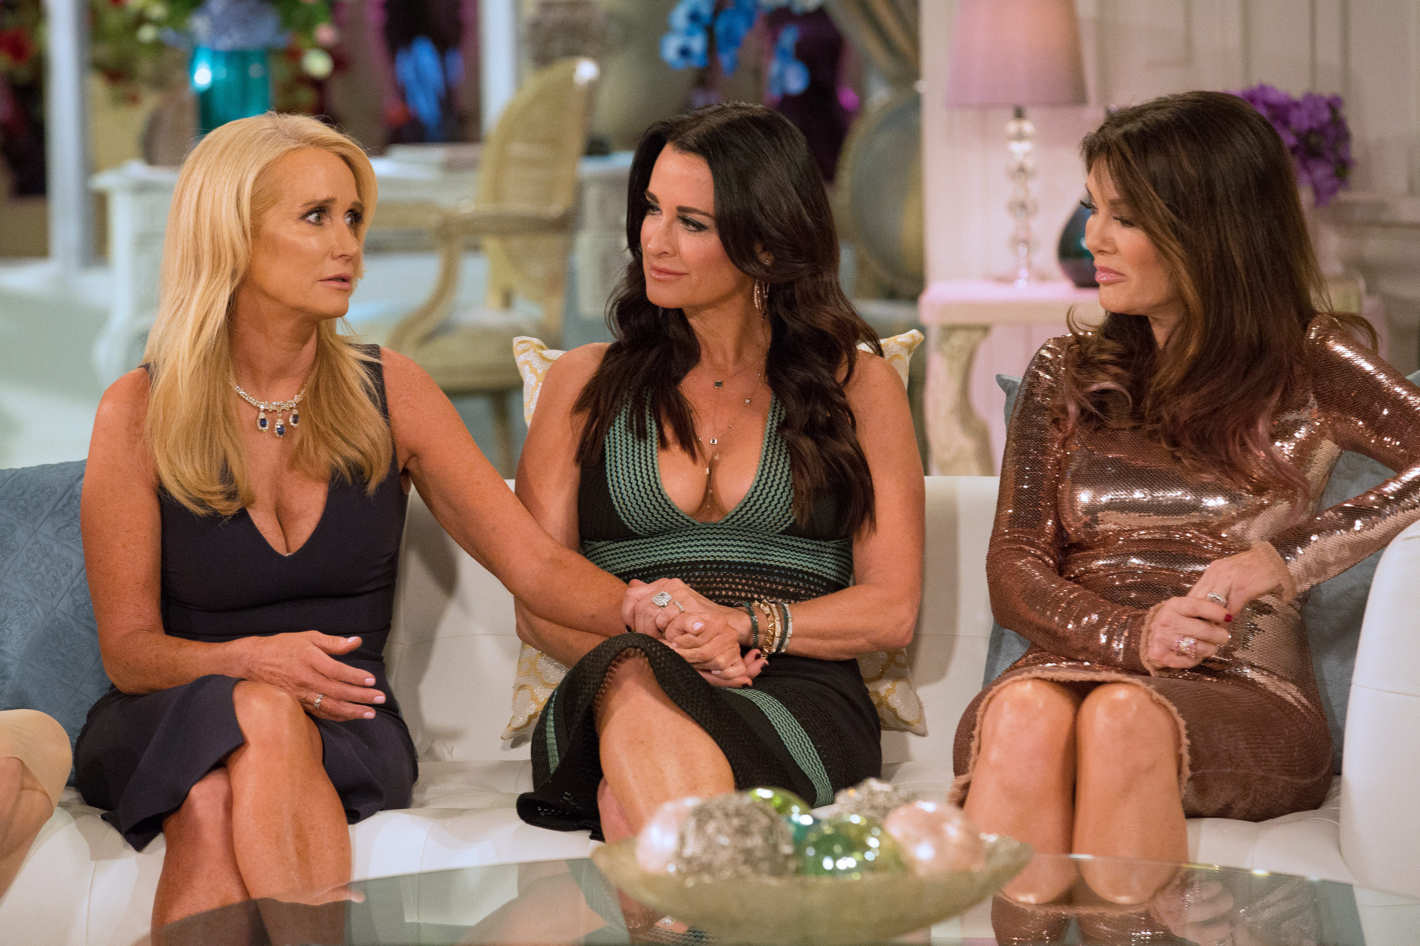 WeSmirch Real housewives of beverly hills taylor abuse pictures